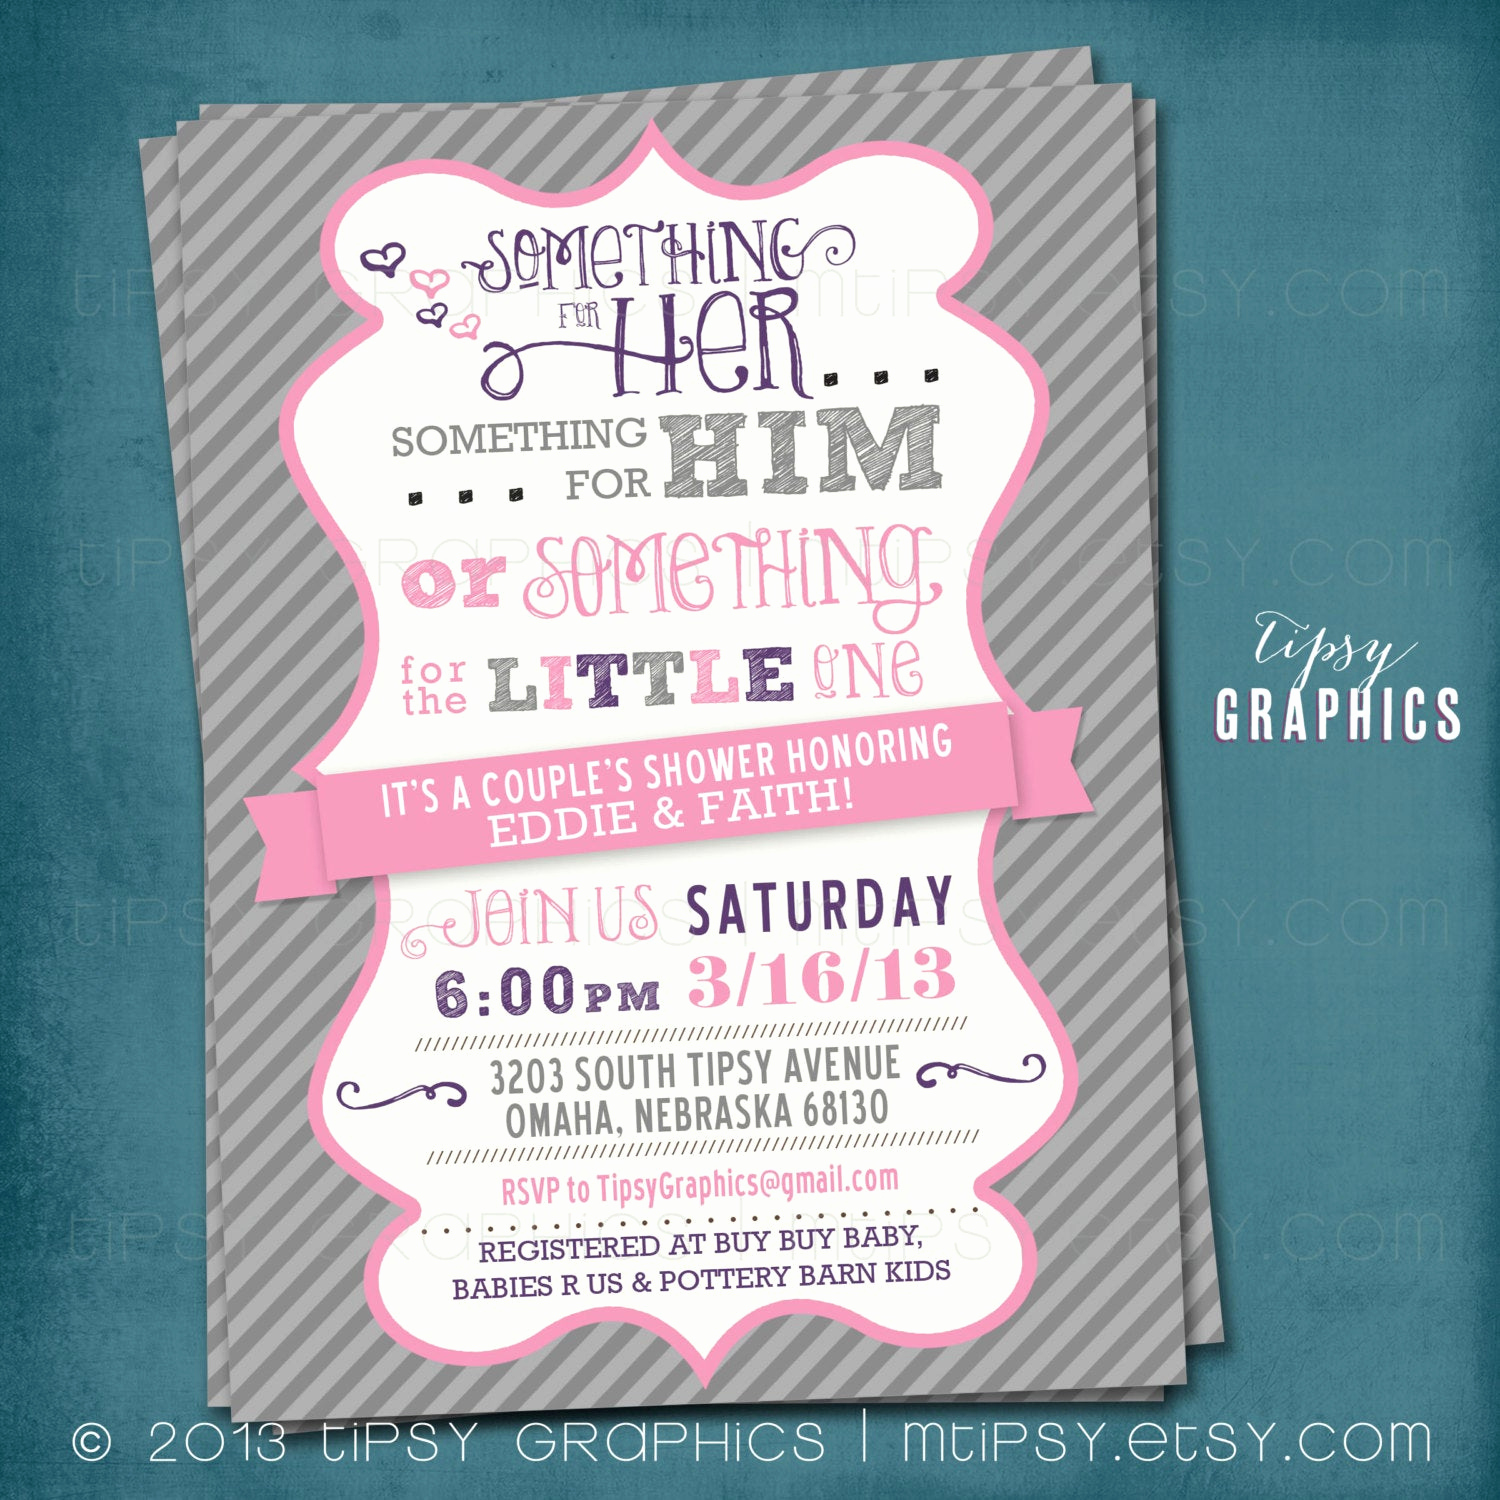 Coed Baby Shower Invitation Wording Elegant Coed Couple S Baby Shower Invite Chevron something for